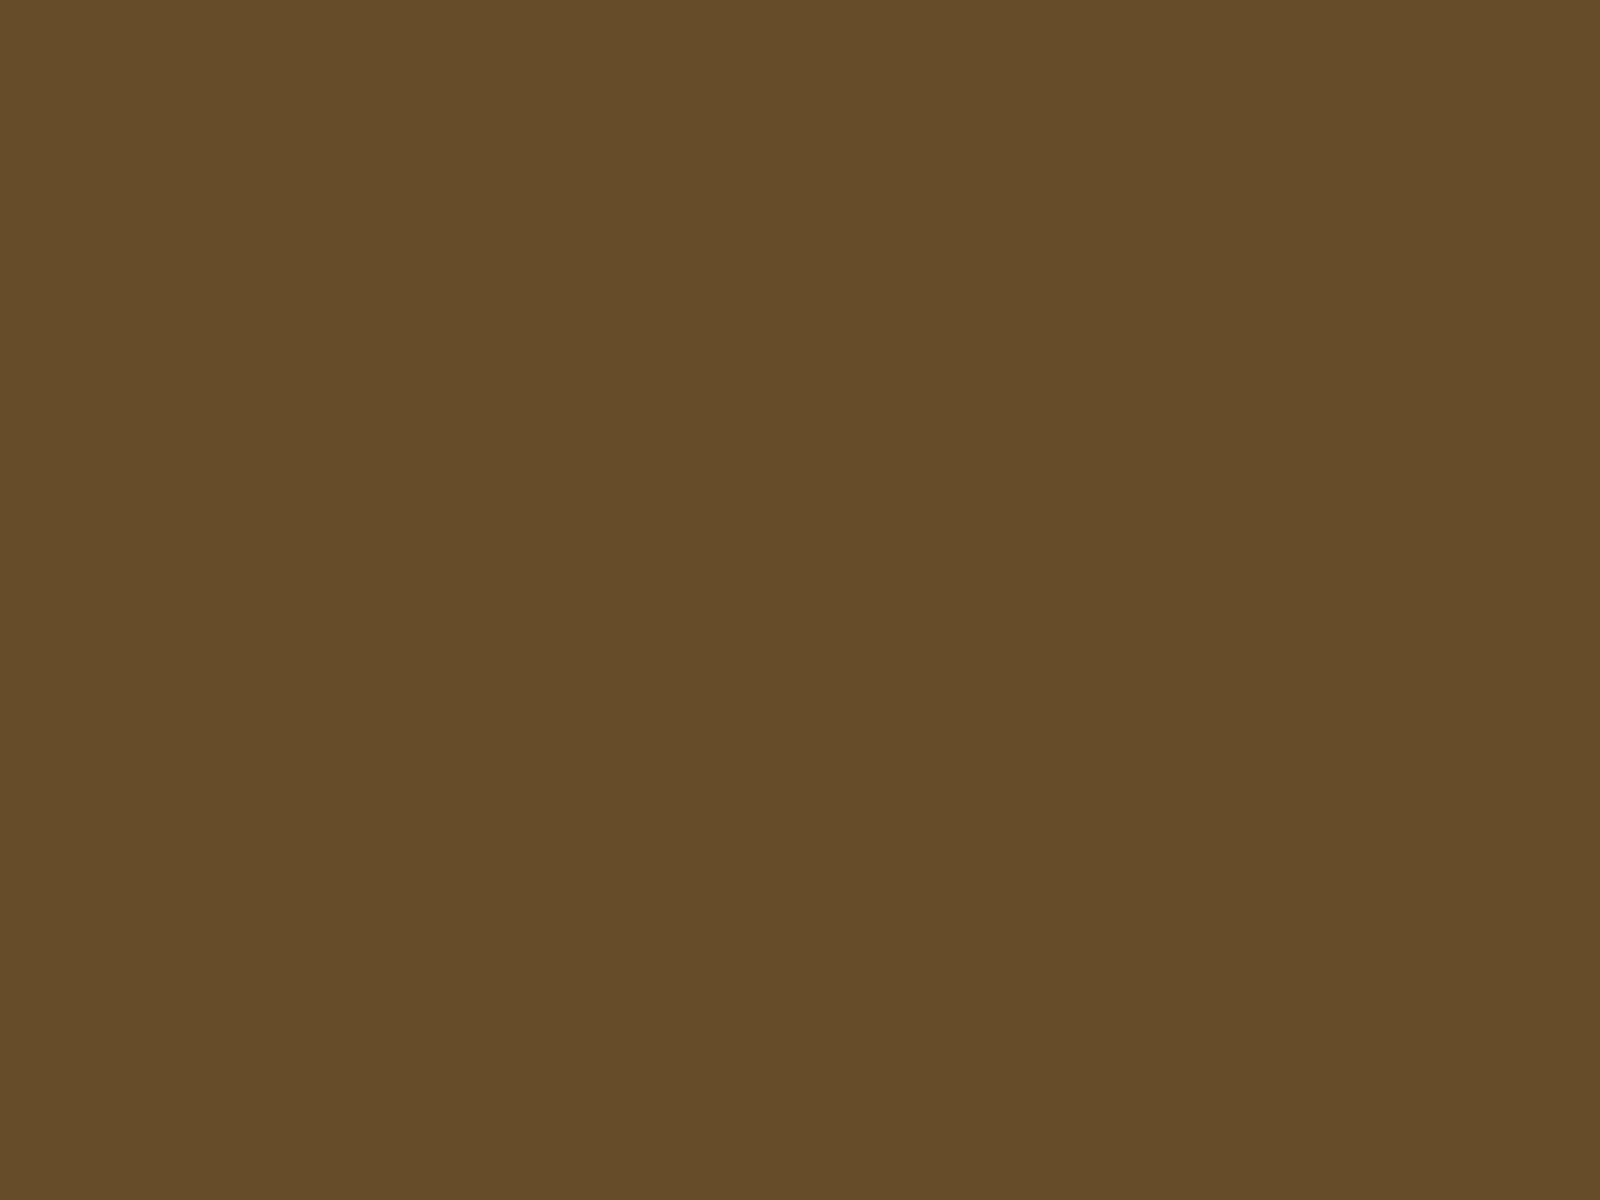 1600x1200 Donkey Brown Solid Color Background